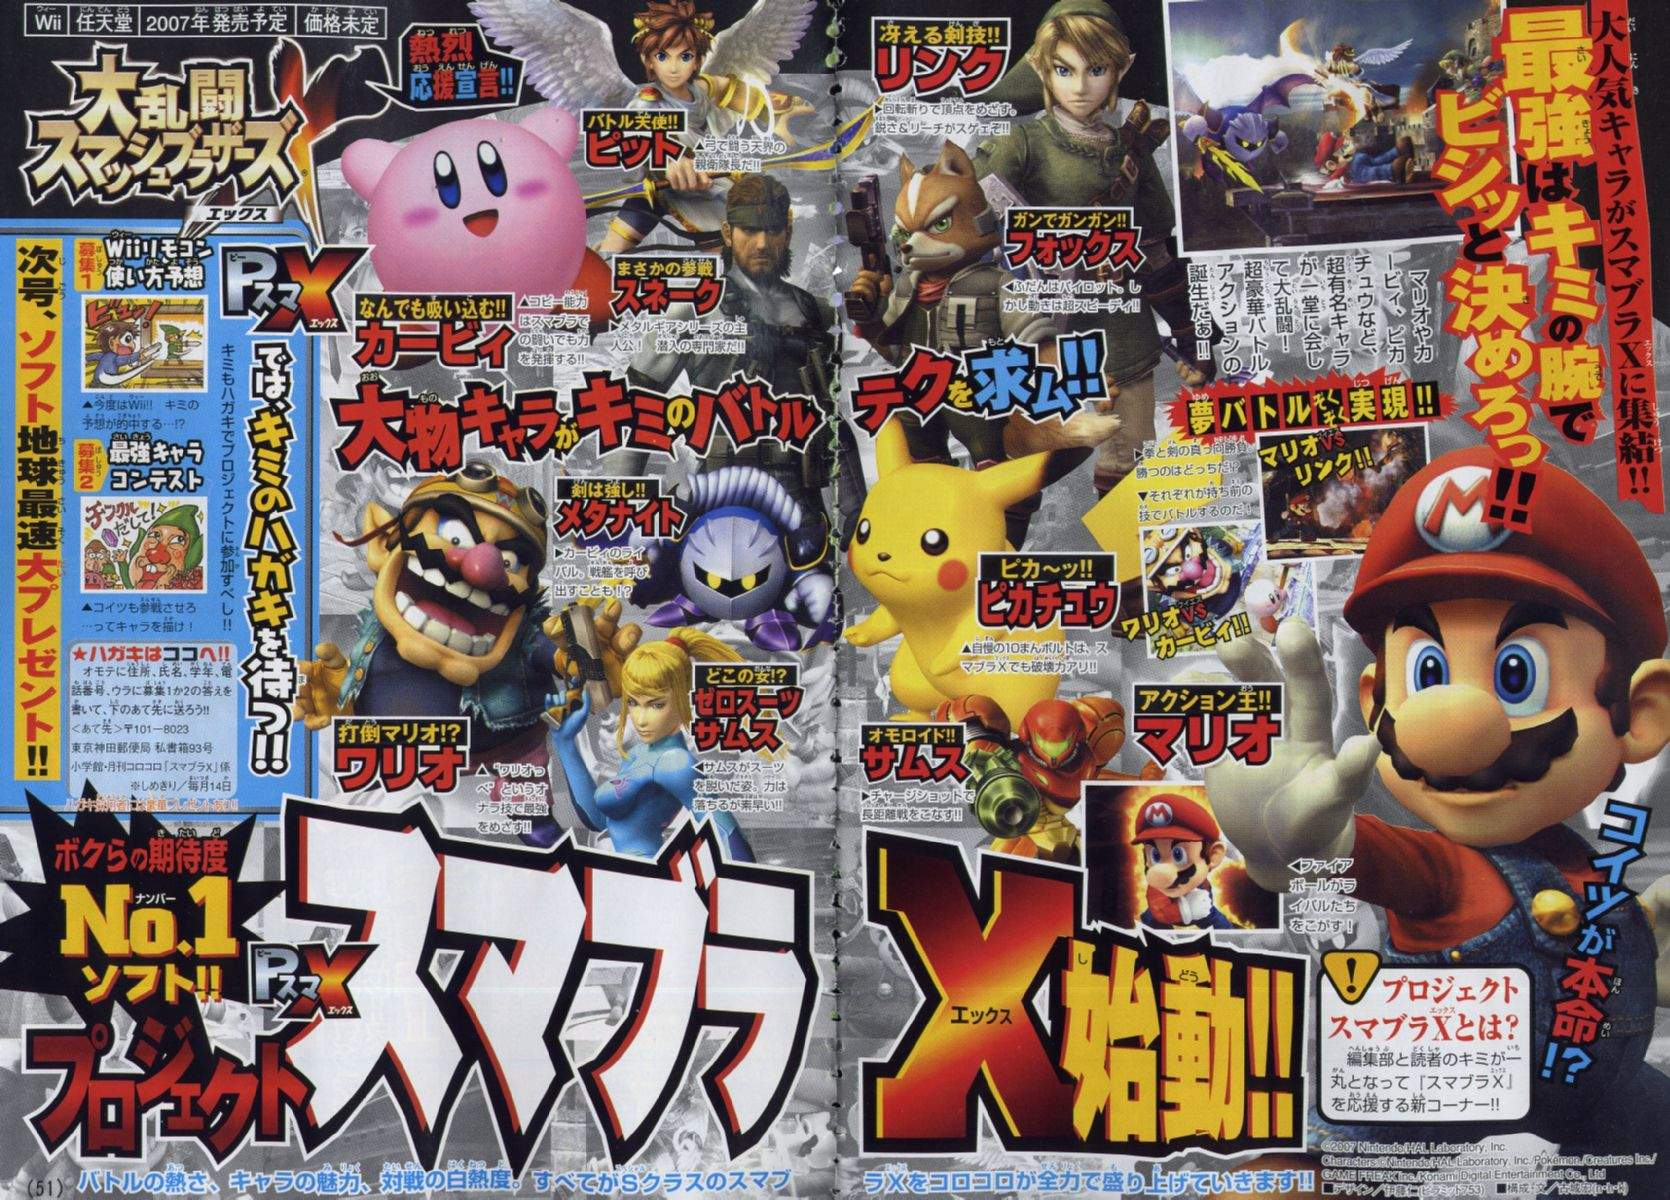 Super Smash Bros. Brawl Scan